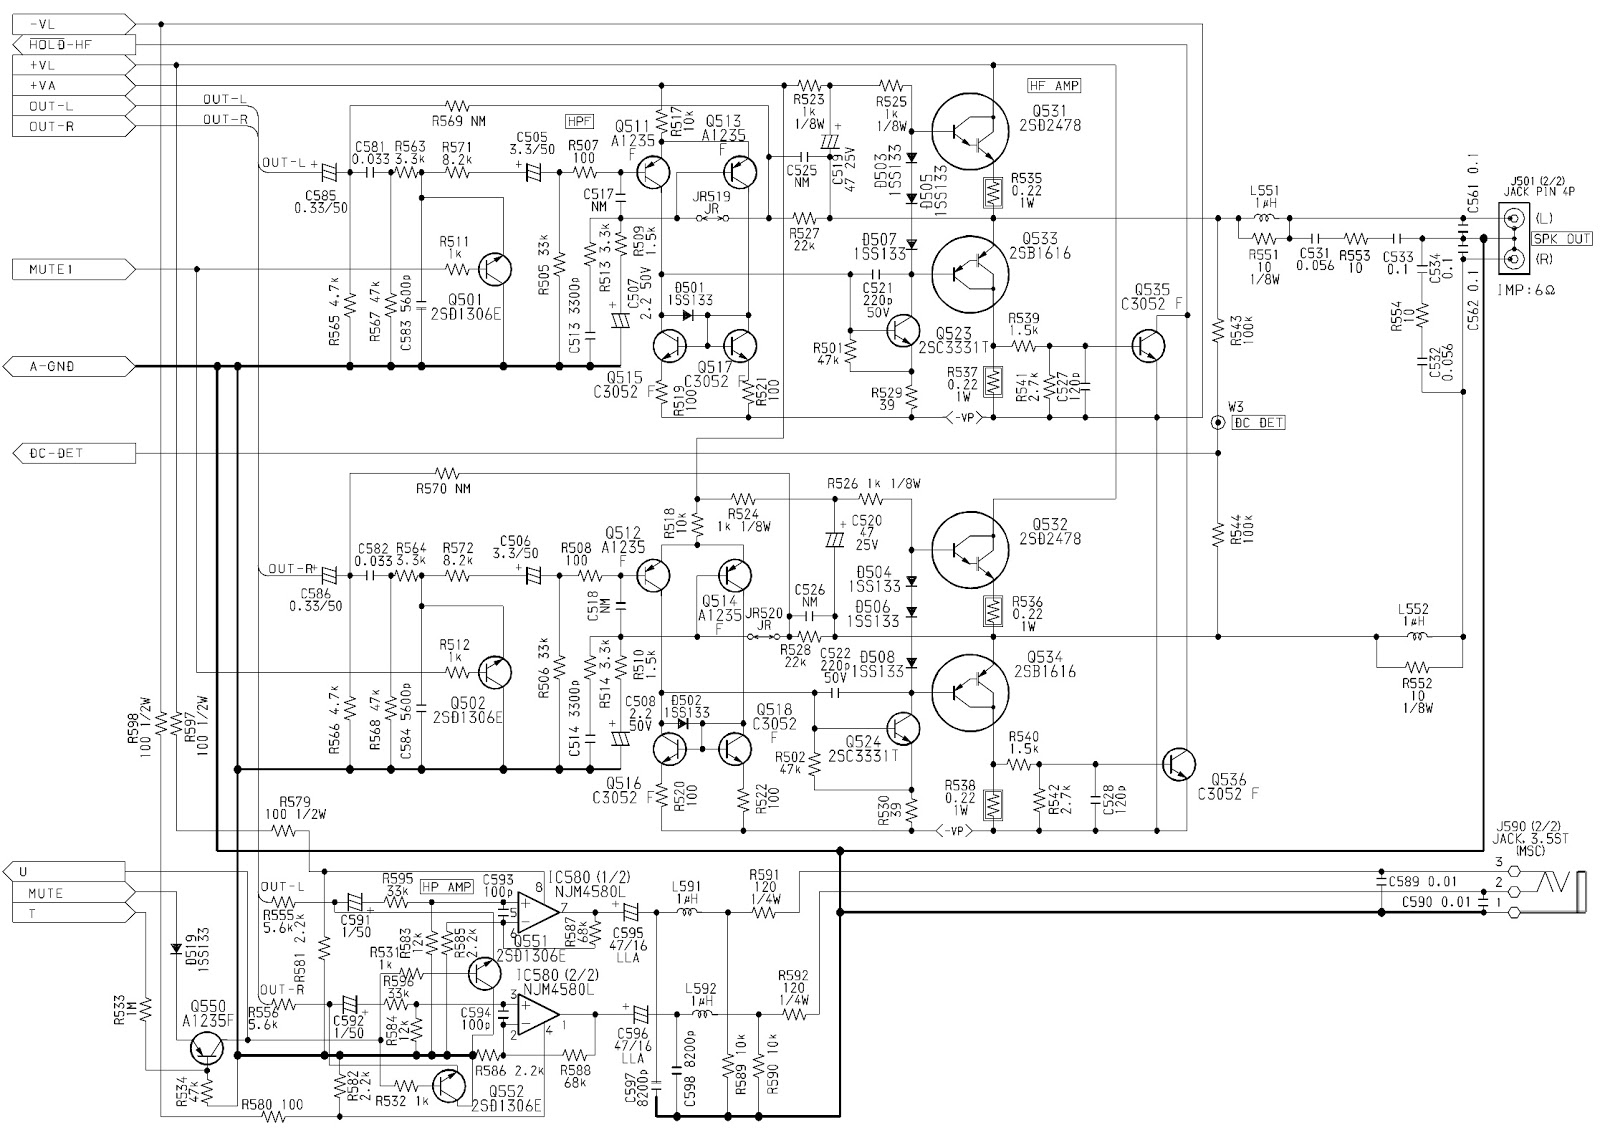 m55 wiring diagram aiwa xr m55 compact disc stereo system schematic diagram ...